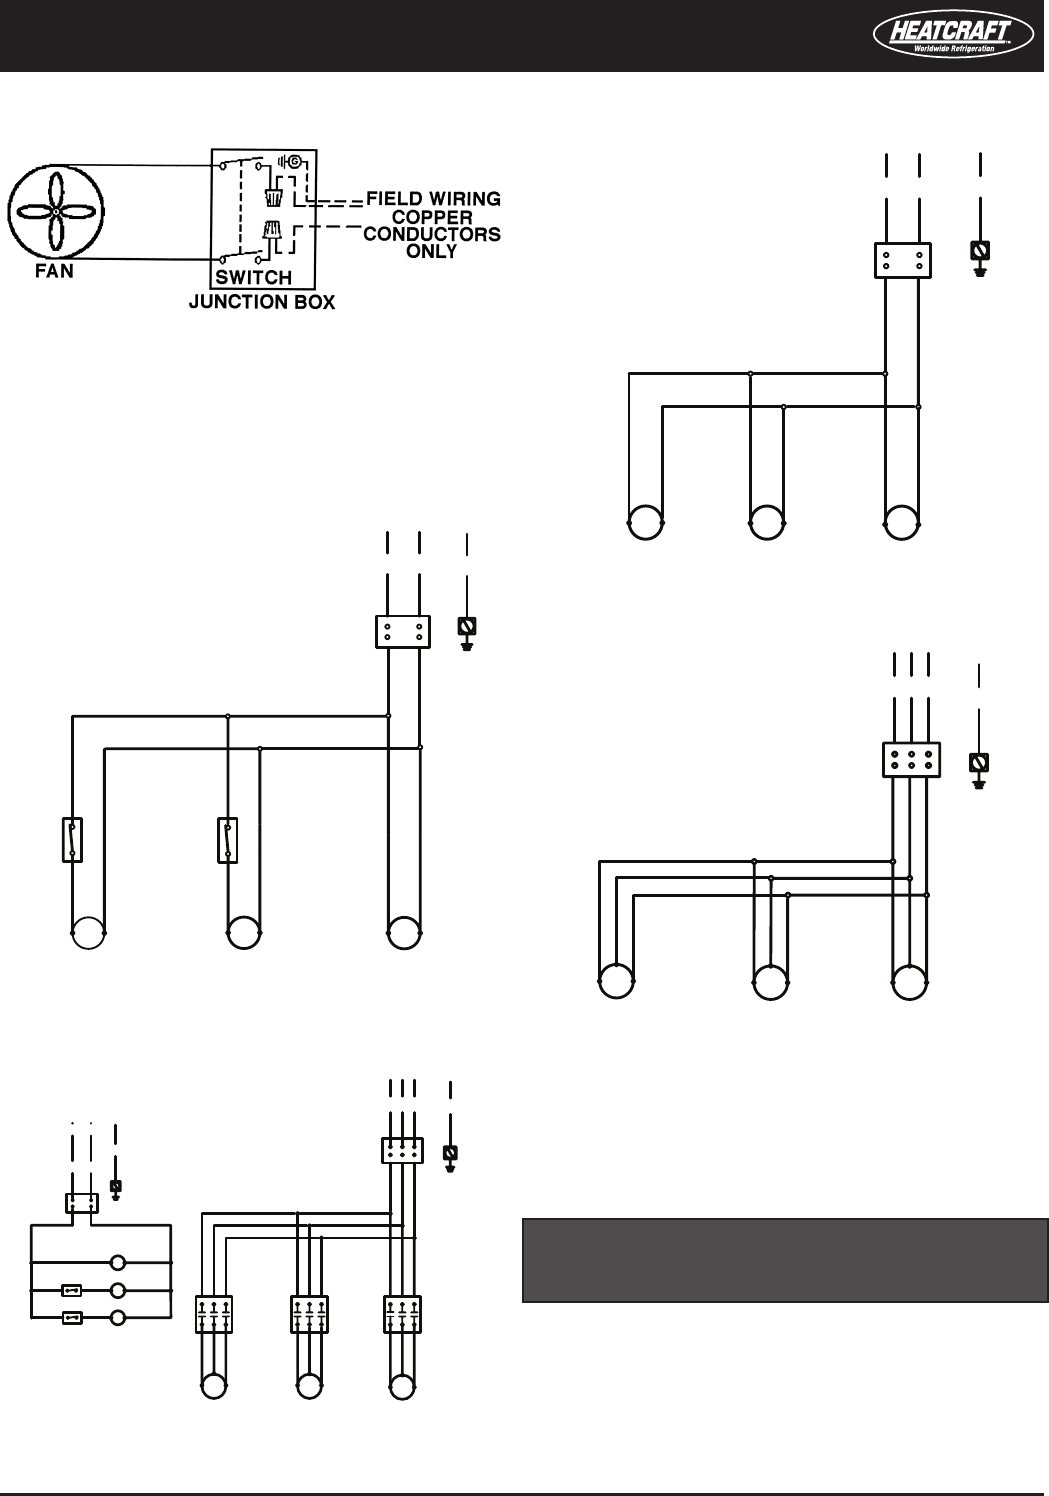 heatcraft refrigeration products 2500018 control circuit may be 24 Telecaster Wiring-Diagram